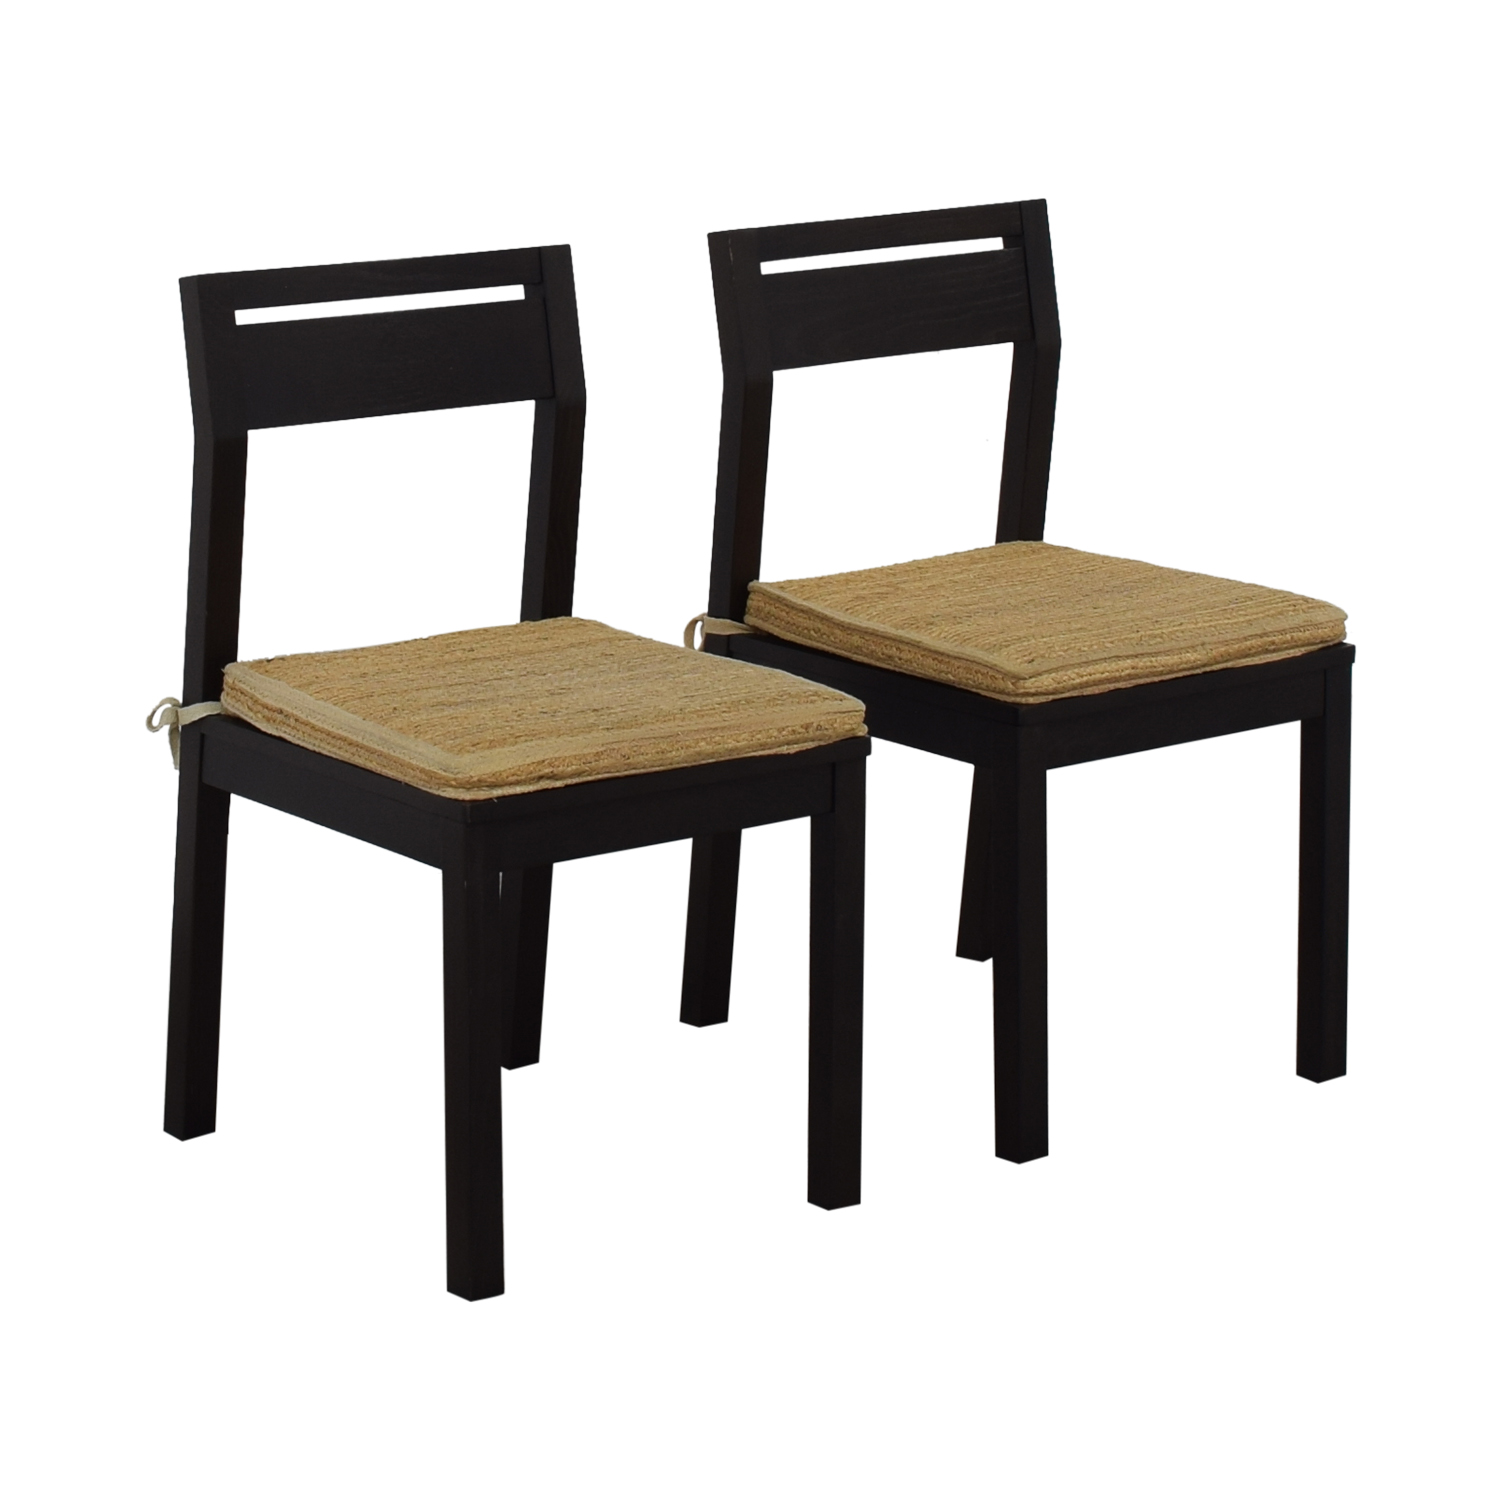 West Elm West Elm Dining Chairs with Woven Cushions second hand